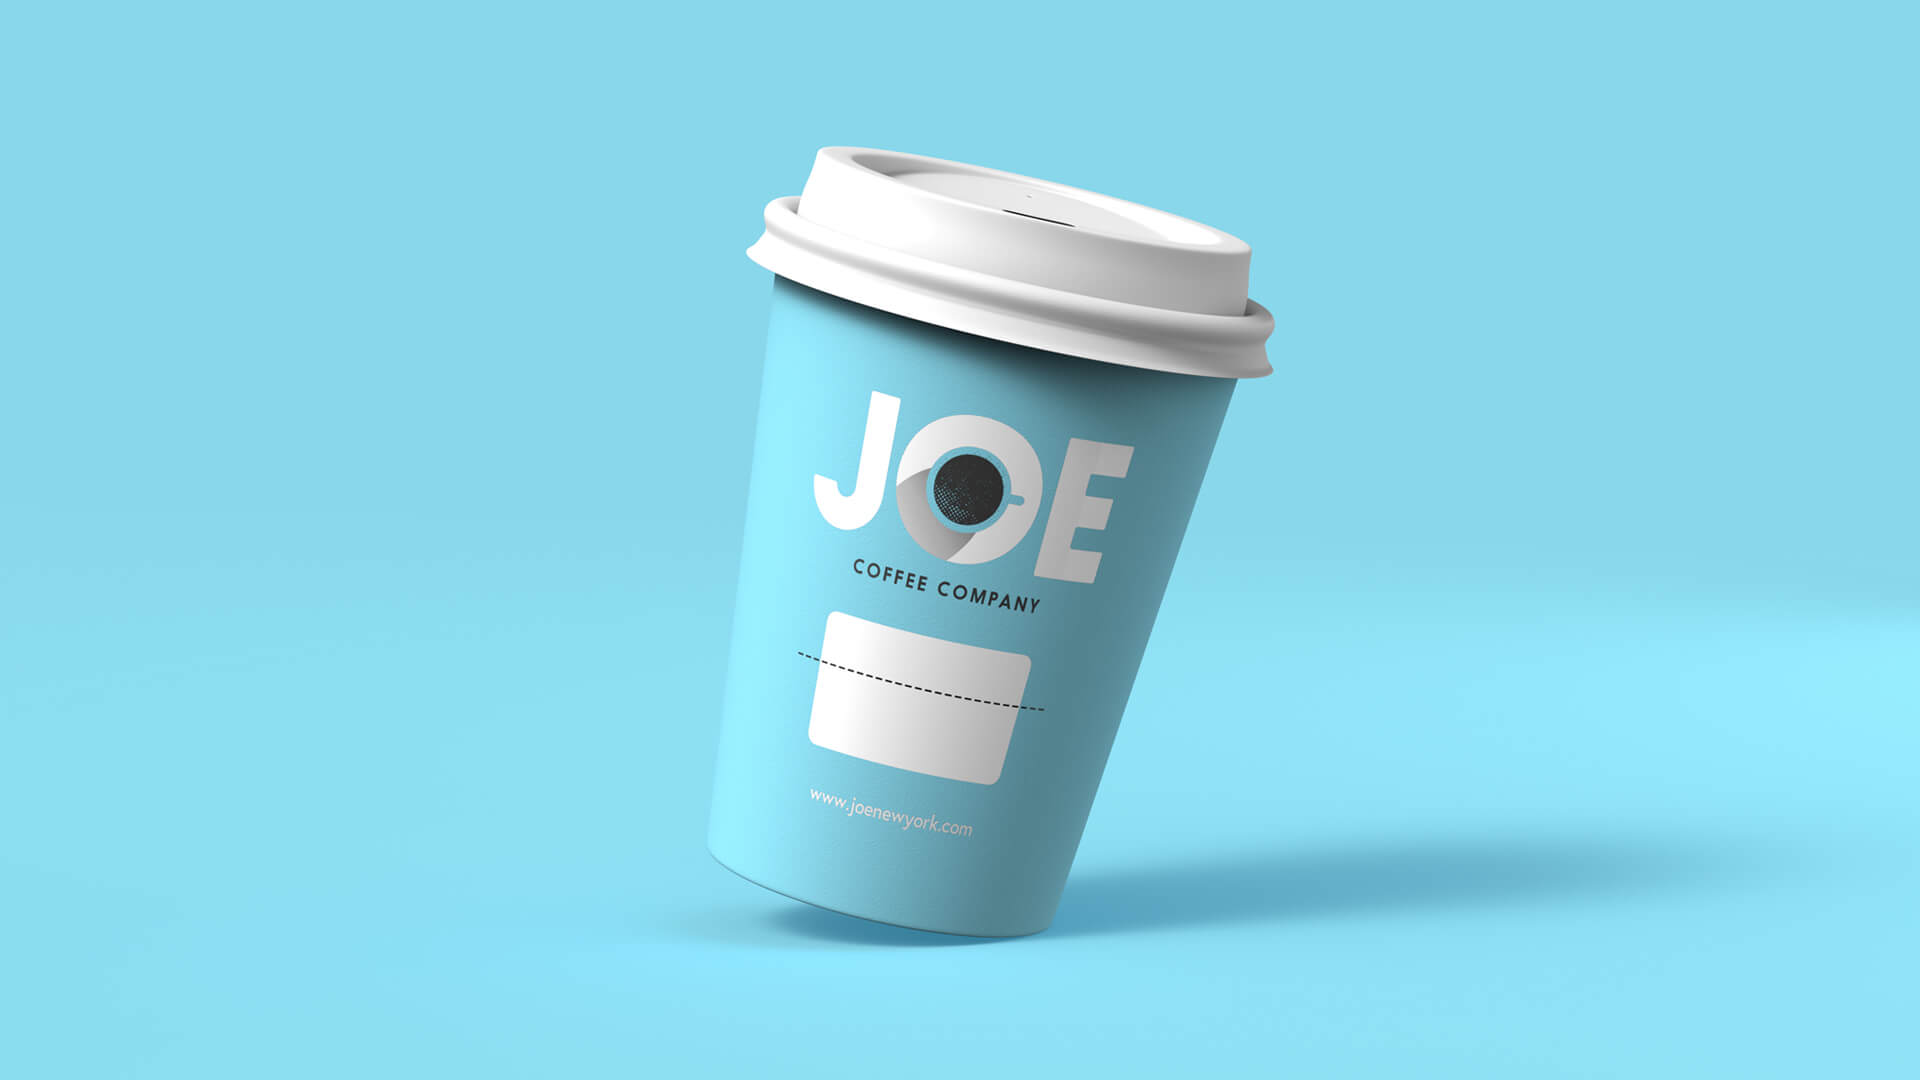 Coffee cup against blue background